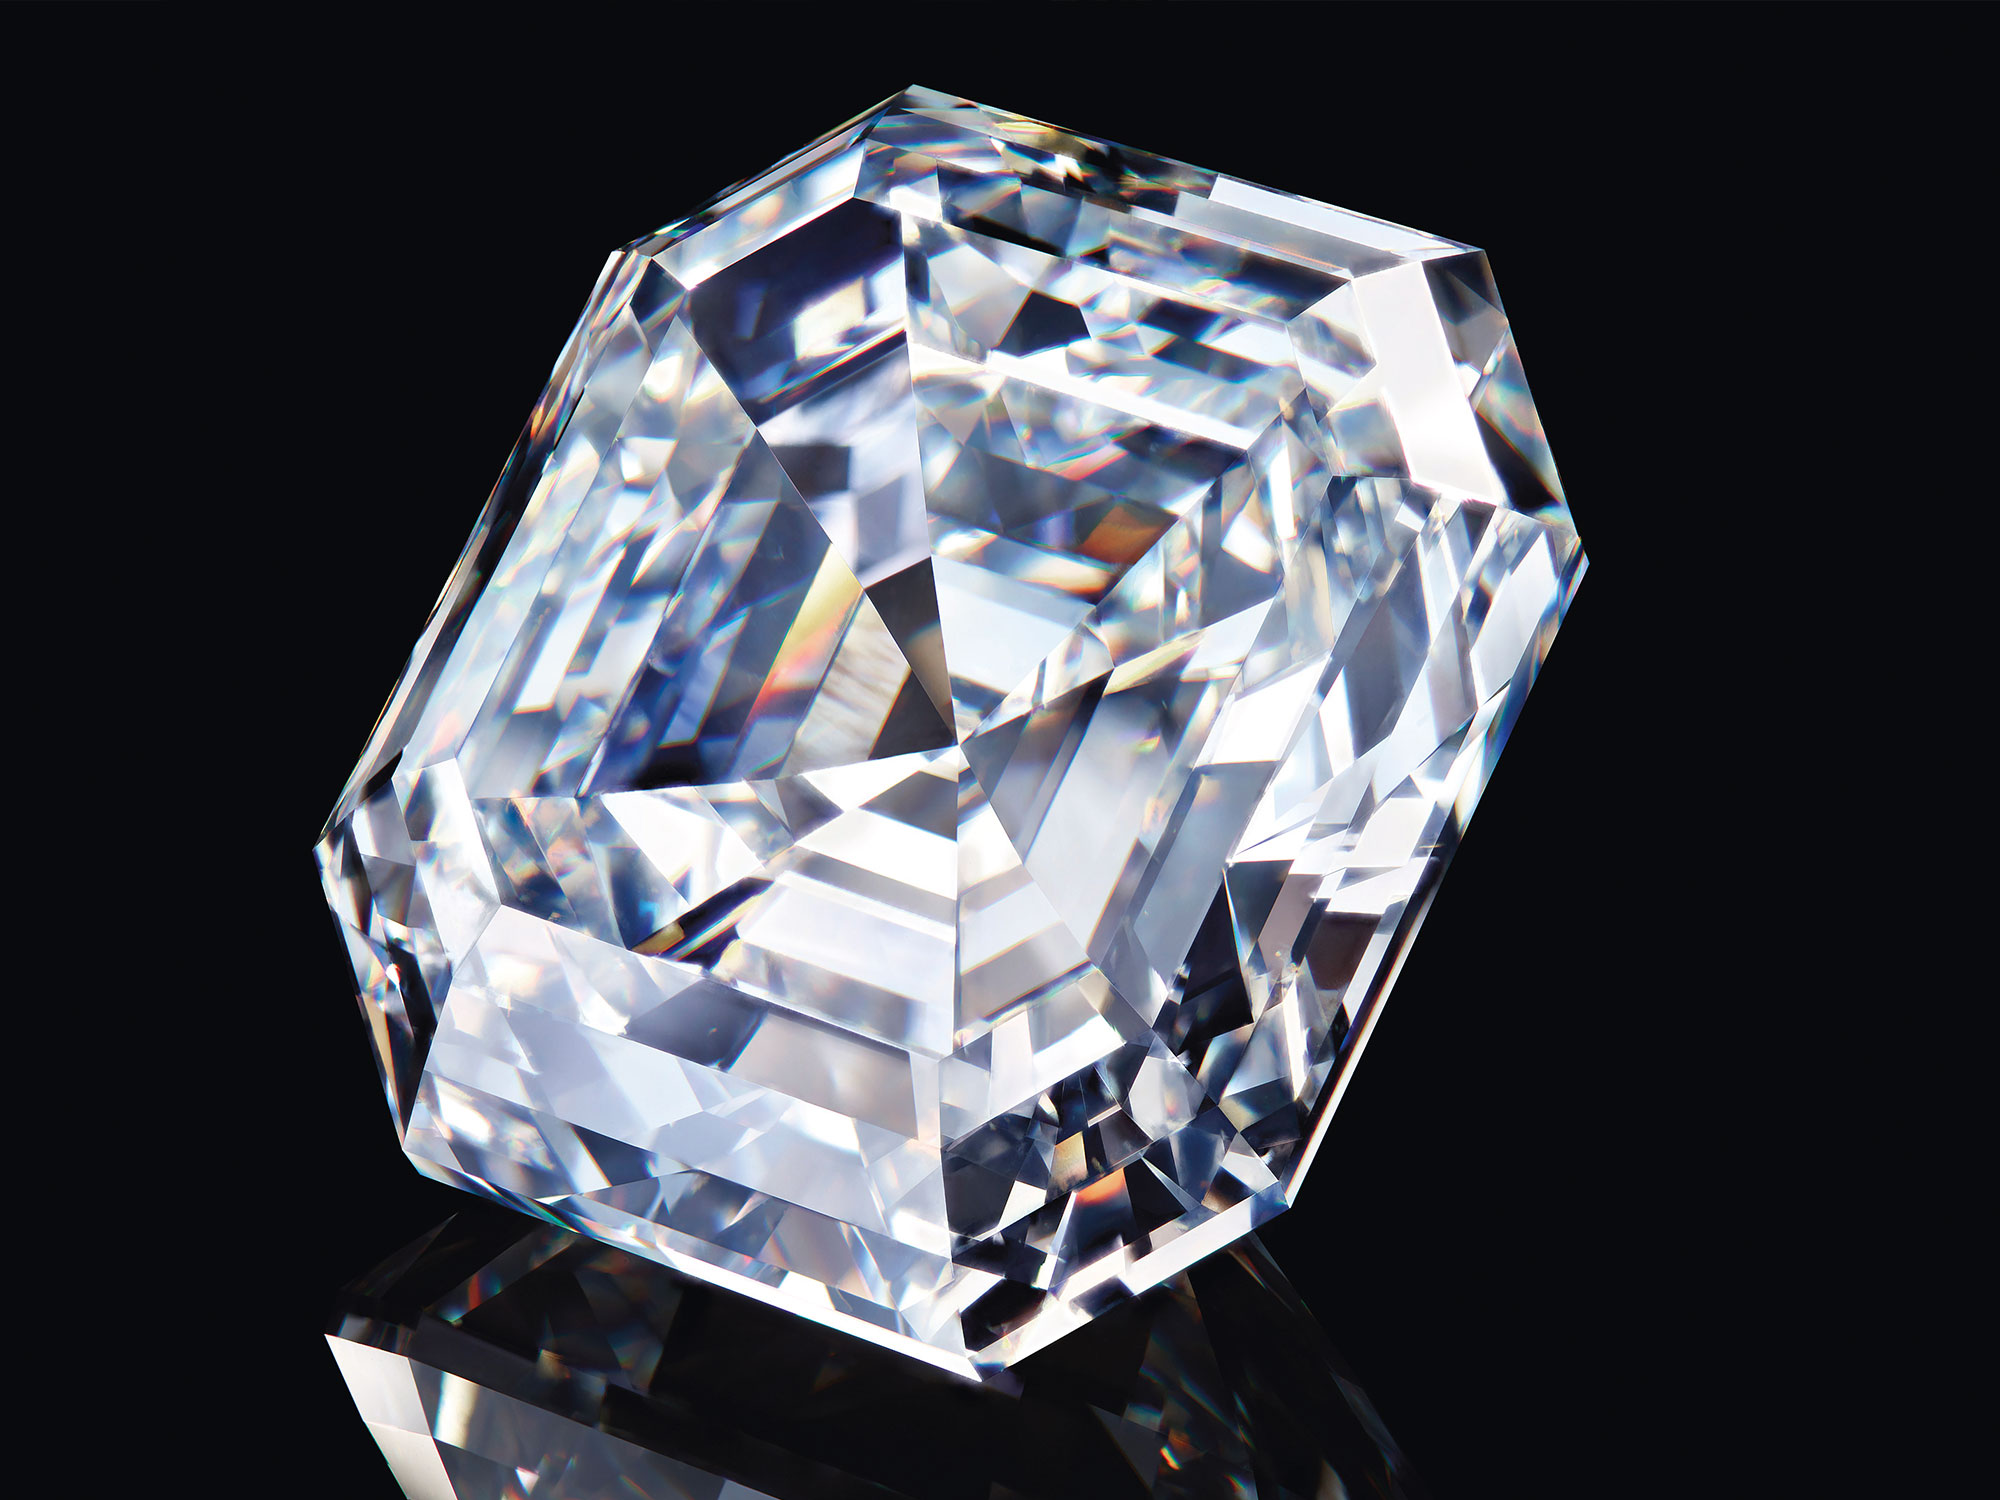 Close up of the 302.37 carat Graff Lesedi La Rona square emerald cut diamond